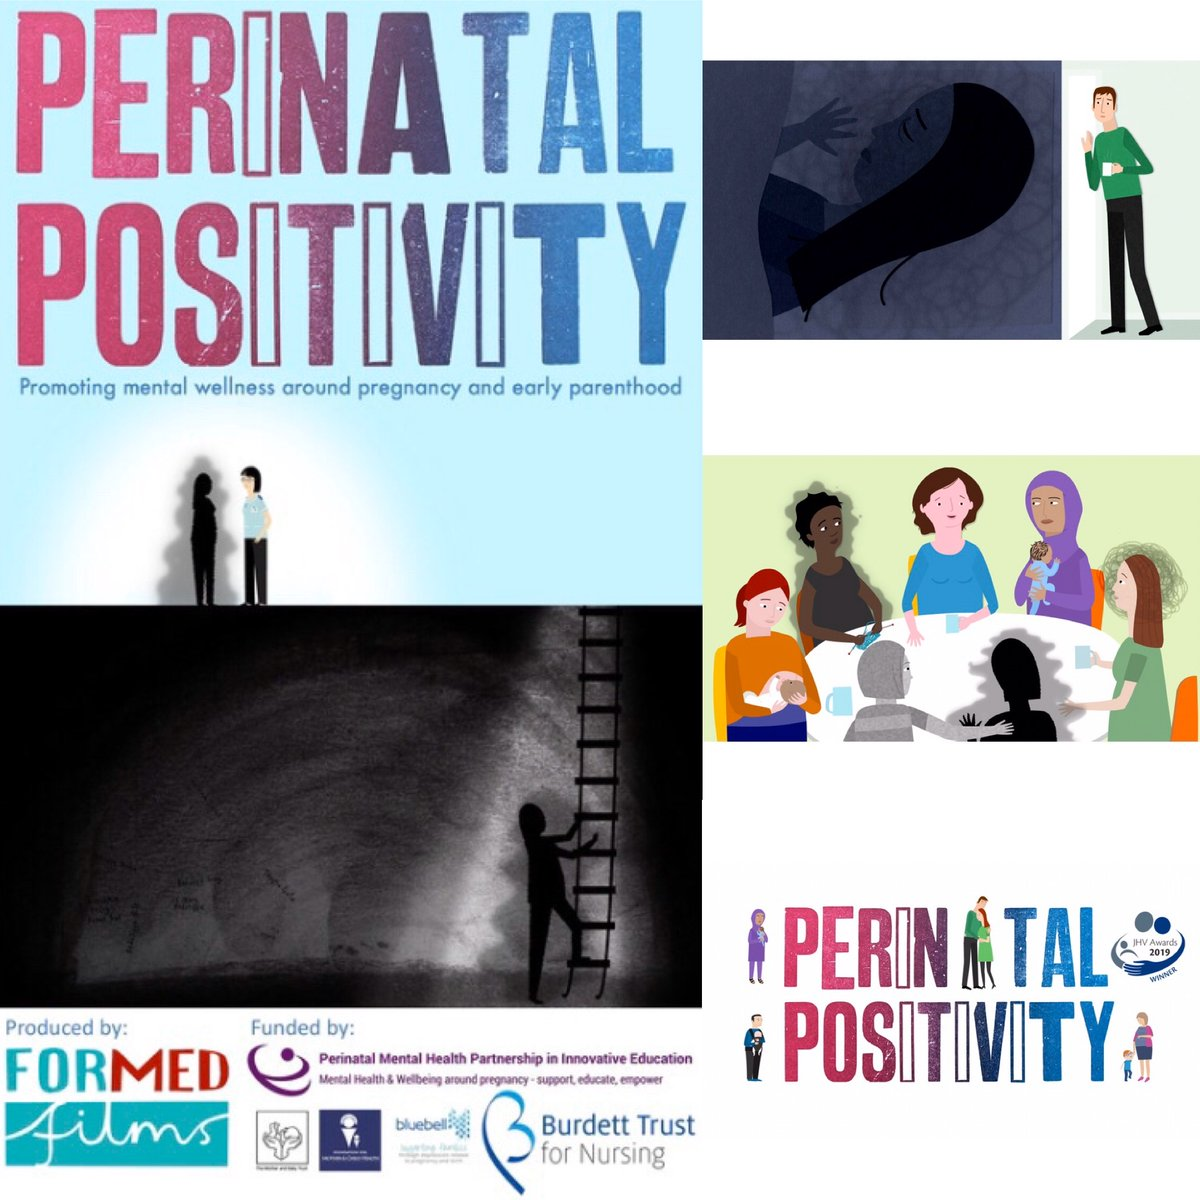 Meet our next shortlisted film!  Perinatal Positivity - Available to watch on https://t.co/OUvsIsRgEJ 2-10 Oct  #mentalhealth #parenthood #newborn #pregnancy #newparent #YouAreNotAlone @PerinatalFilm @ForMed_Films @RachelLiebling @FMCH_UK @BluebellCare @BurdettTrust @ChelwestFT https://t.co/hNSgAqE5Y7